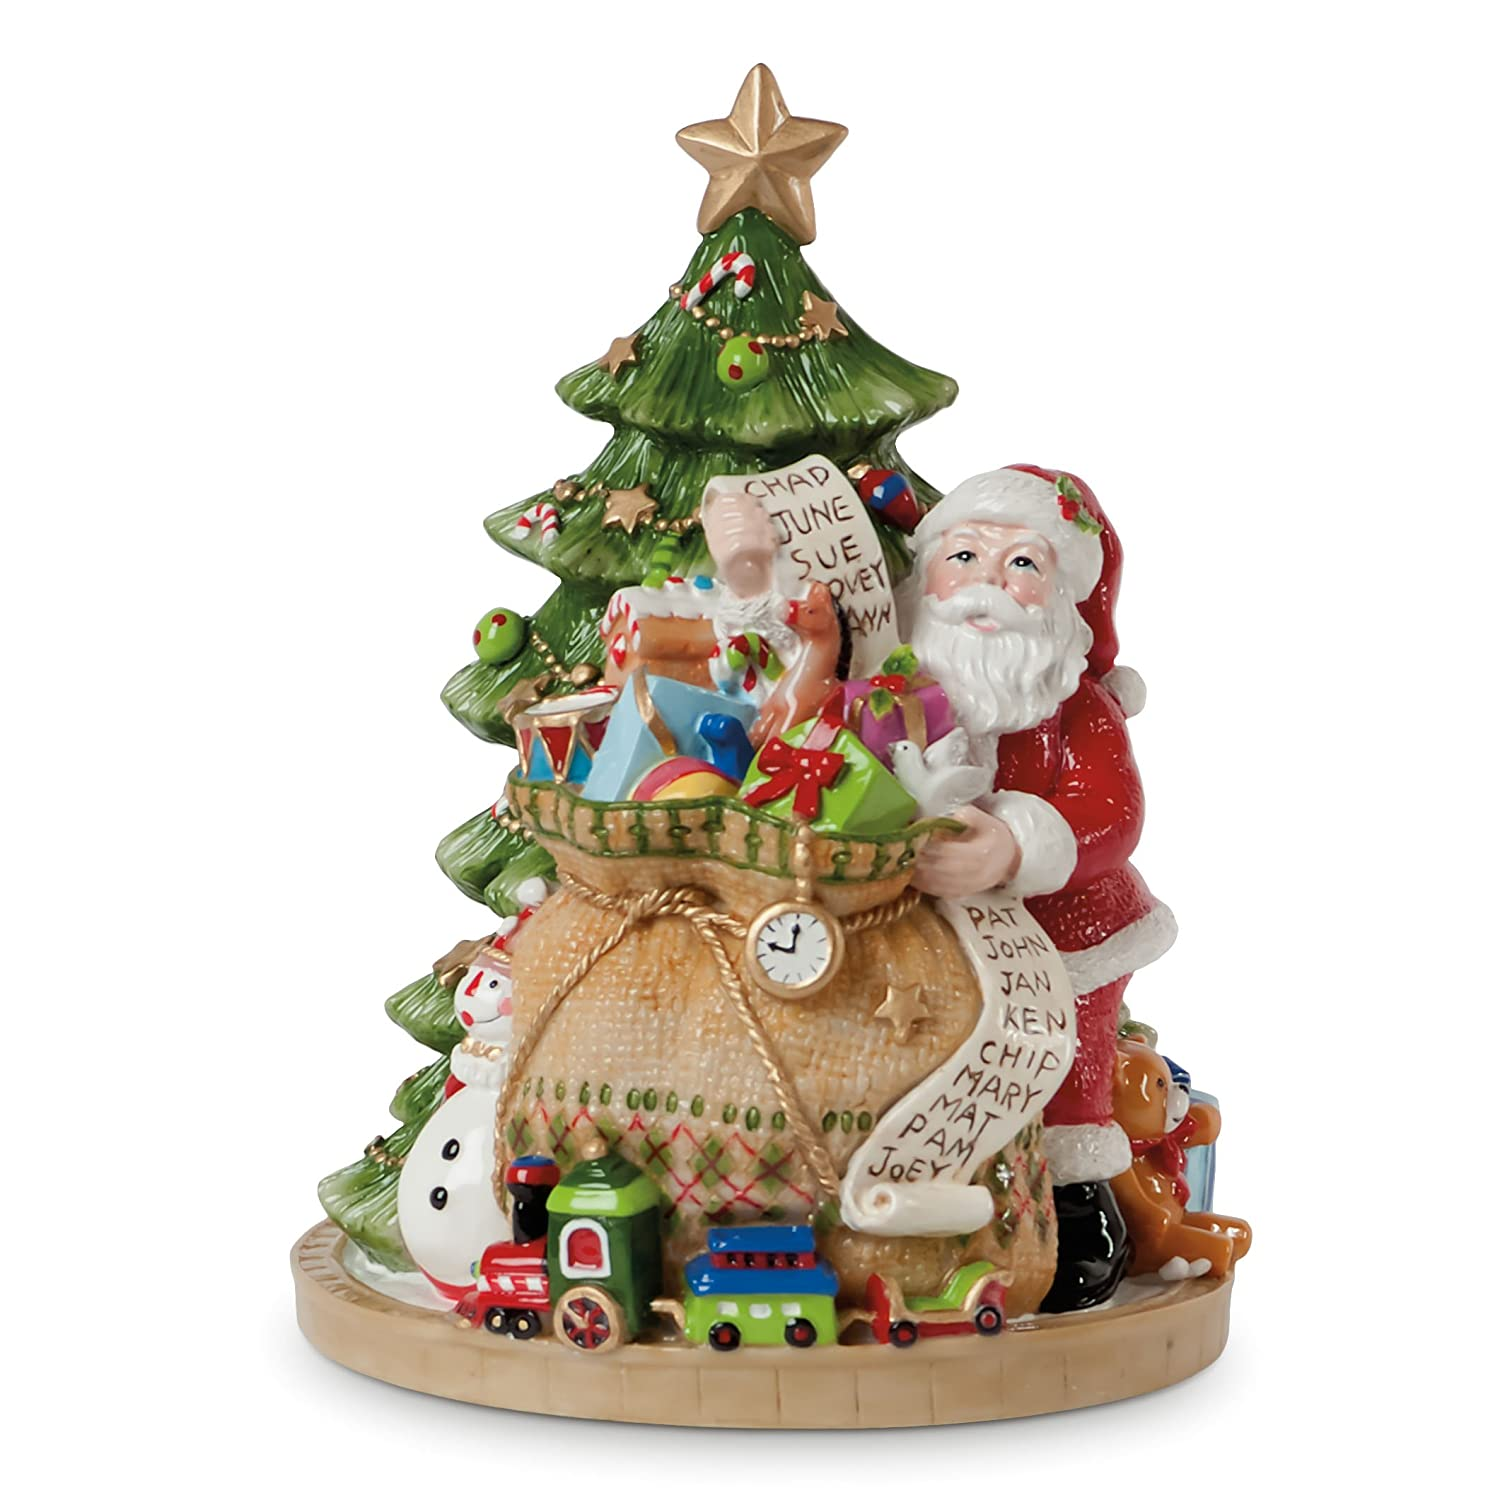 Gifts from Santa Collection, We Wish You A Merry Christmas' Musical Figurine Fitz and Floyd 29-451